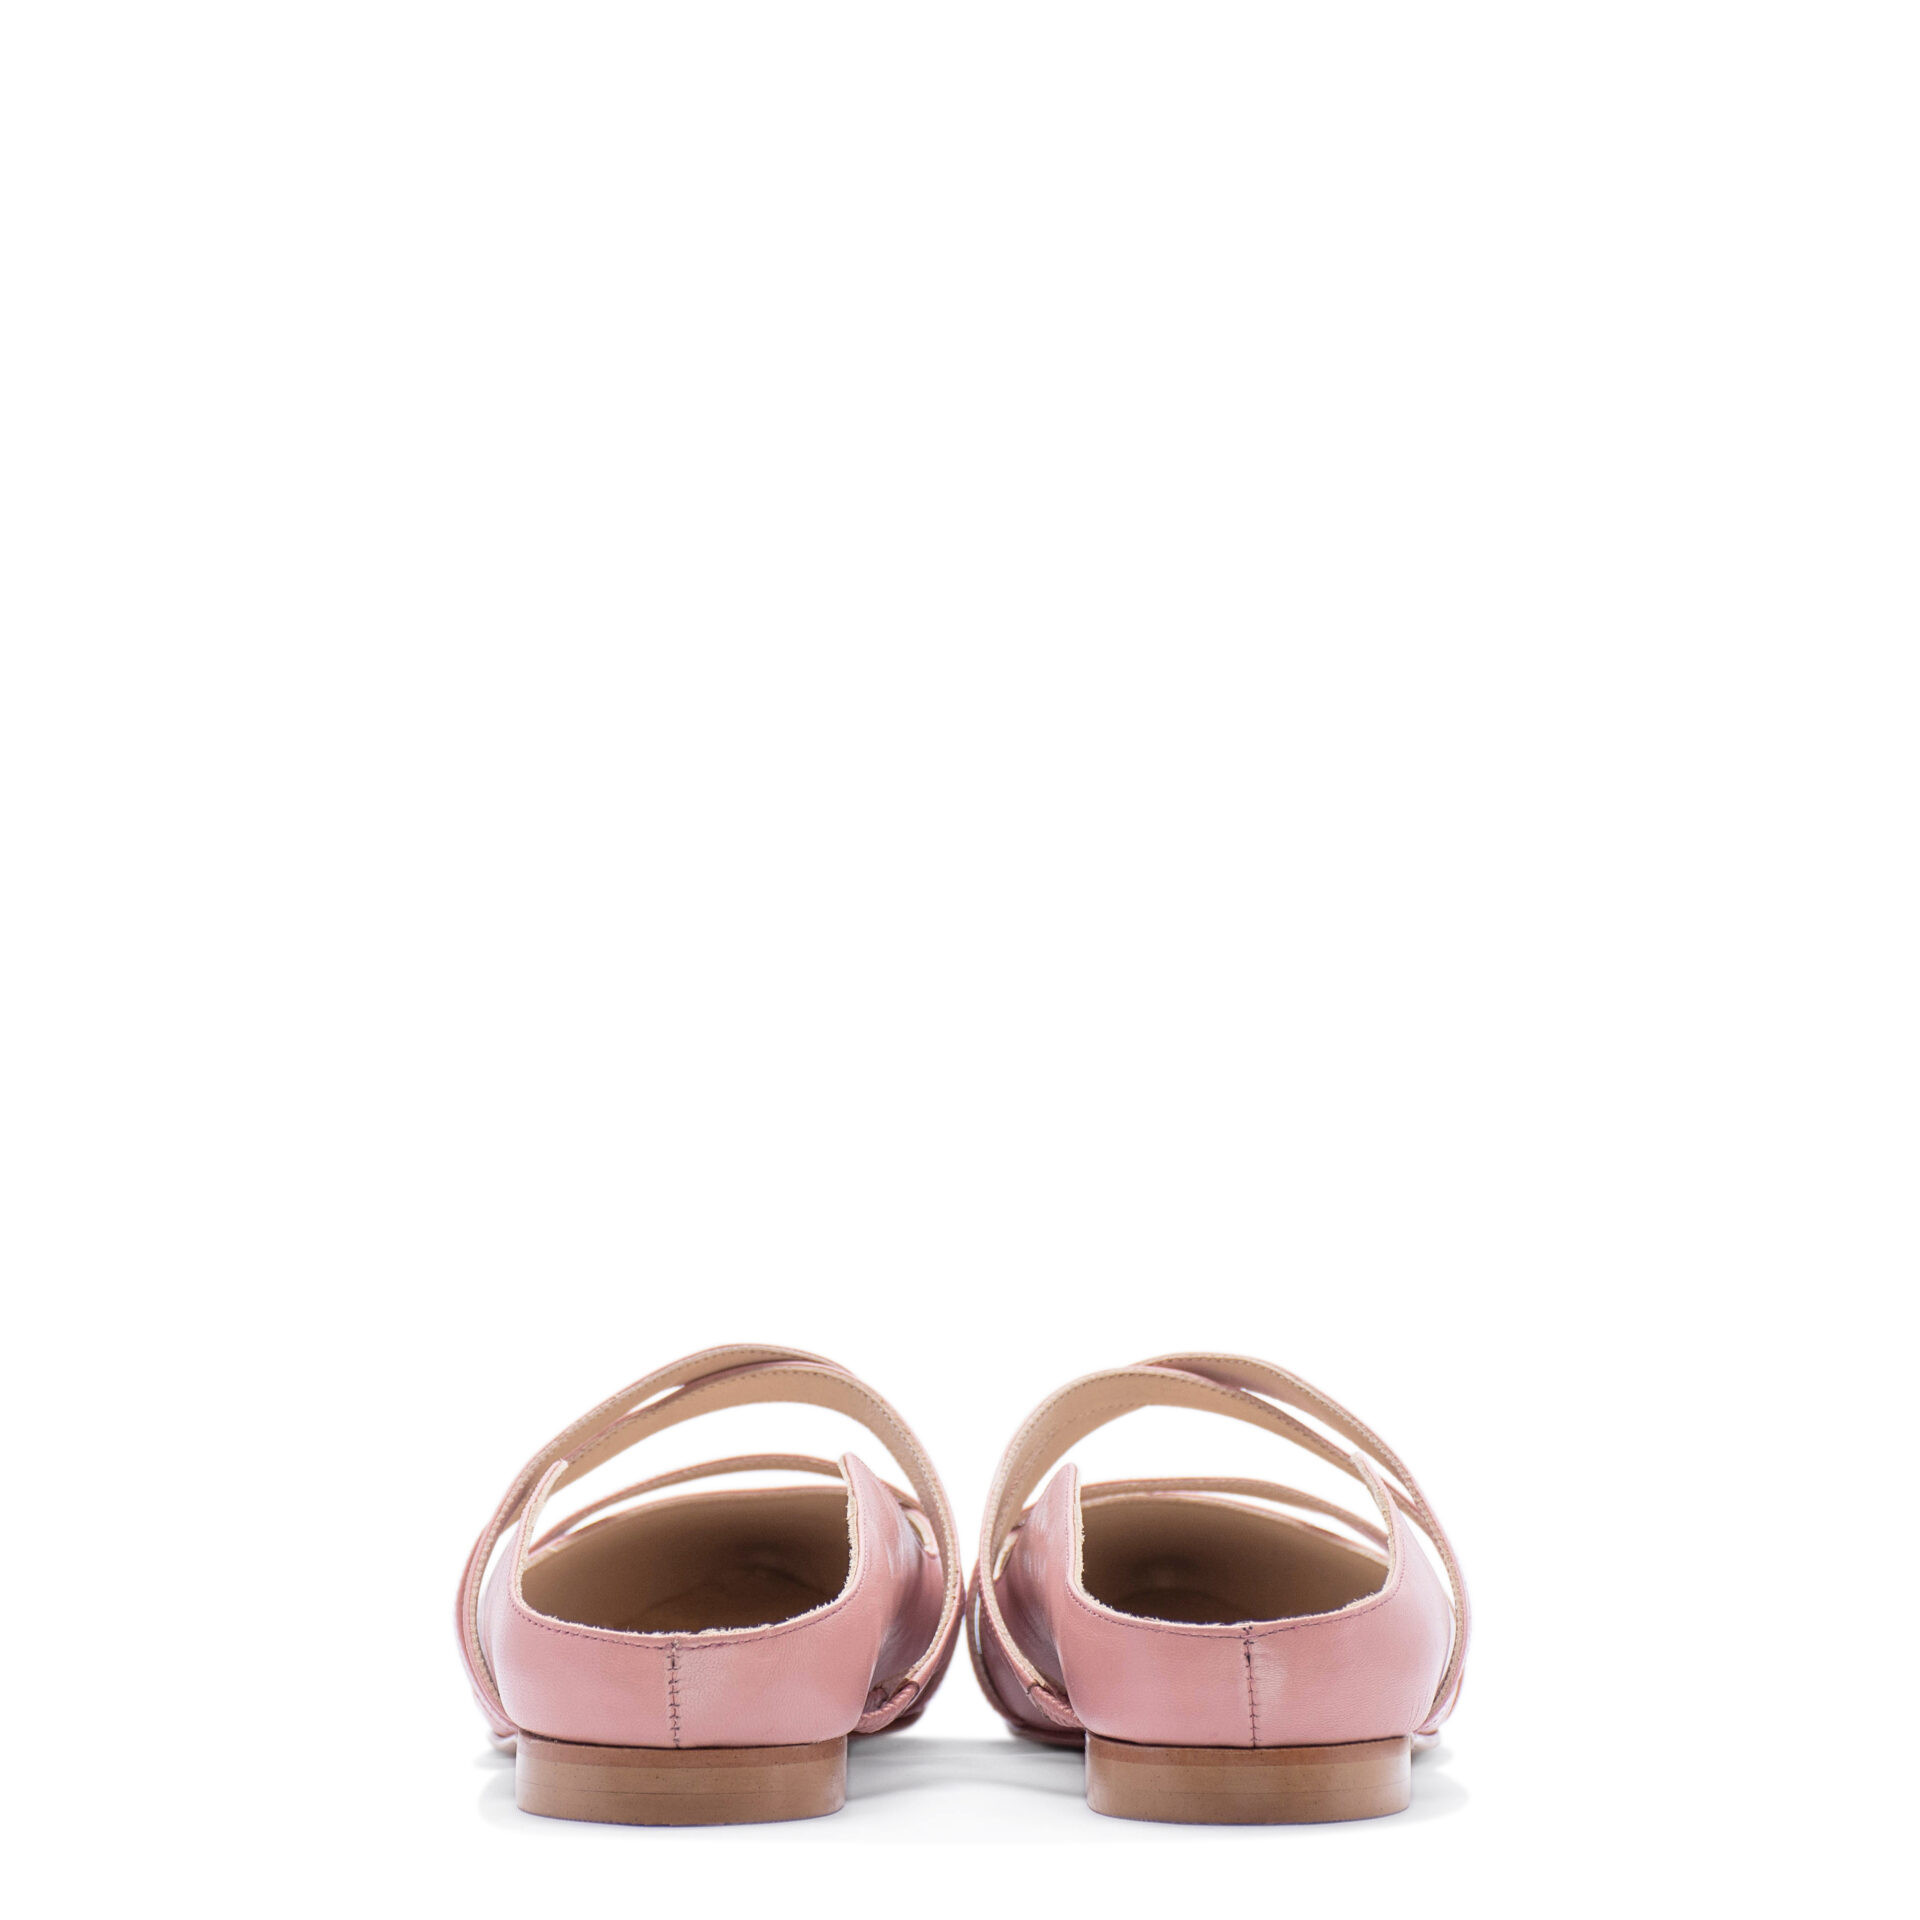 pink pointed-toe bridal flat shoes